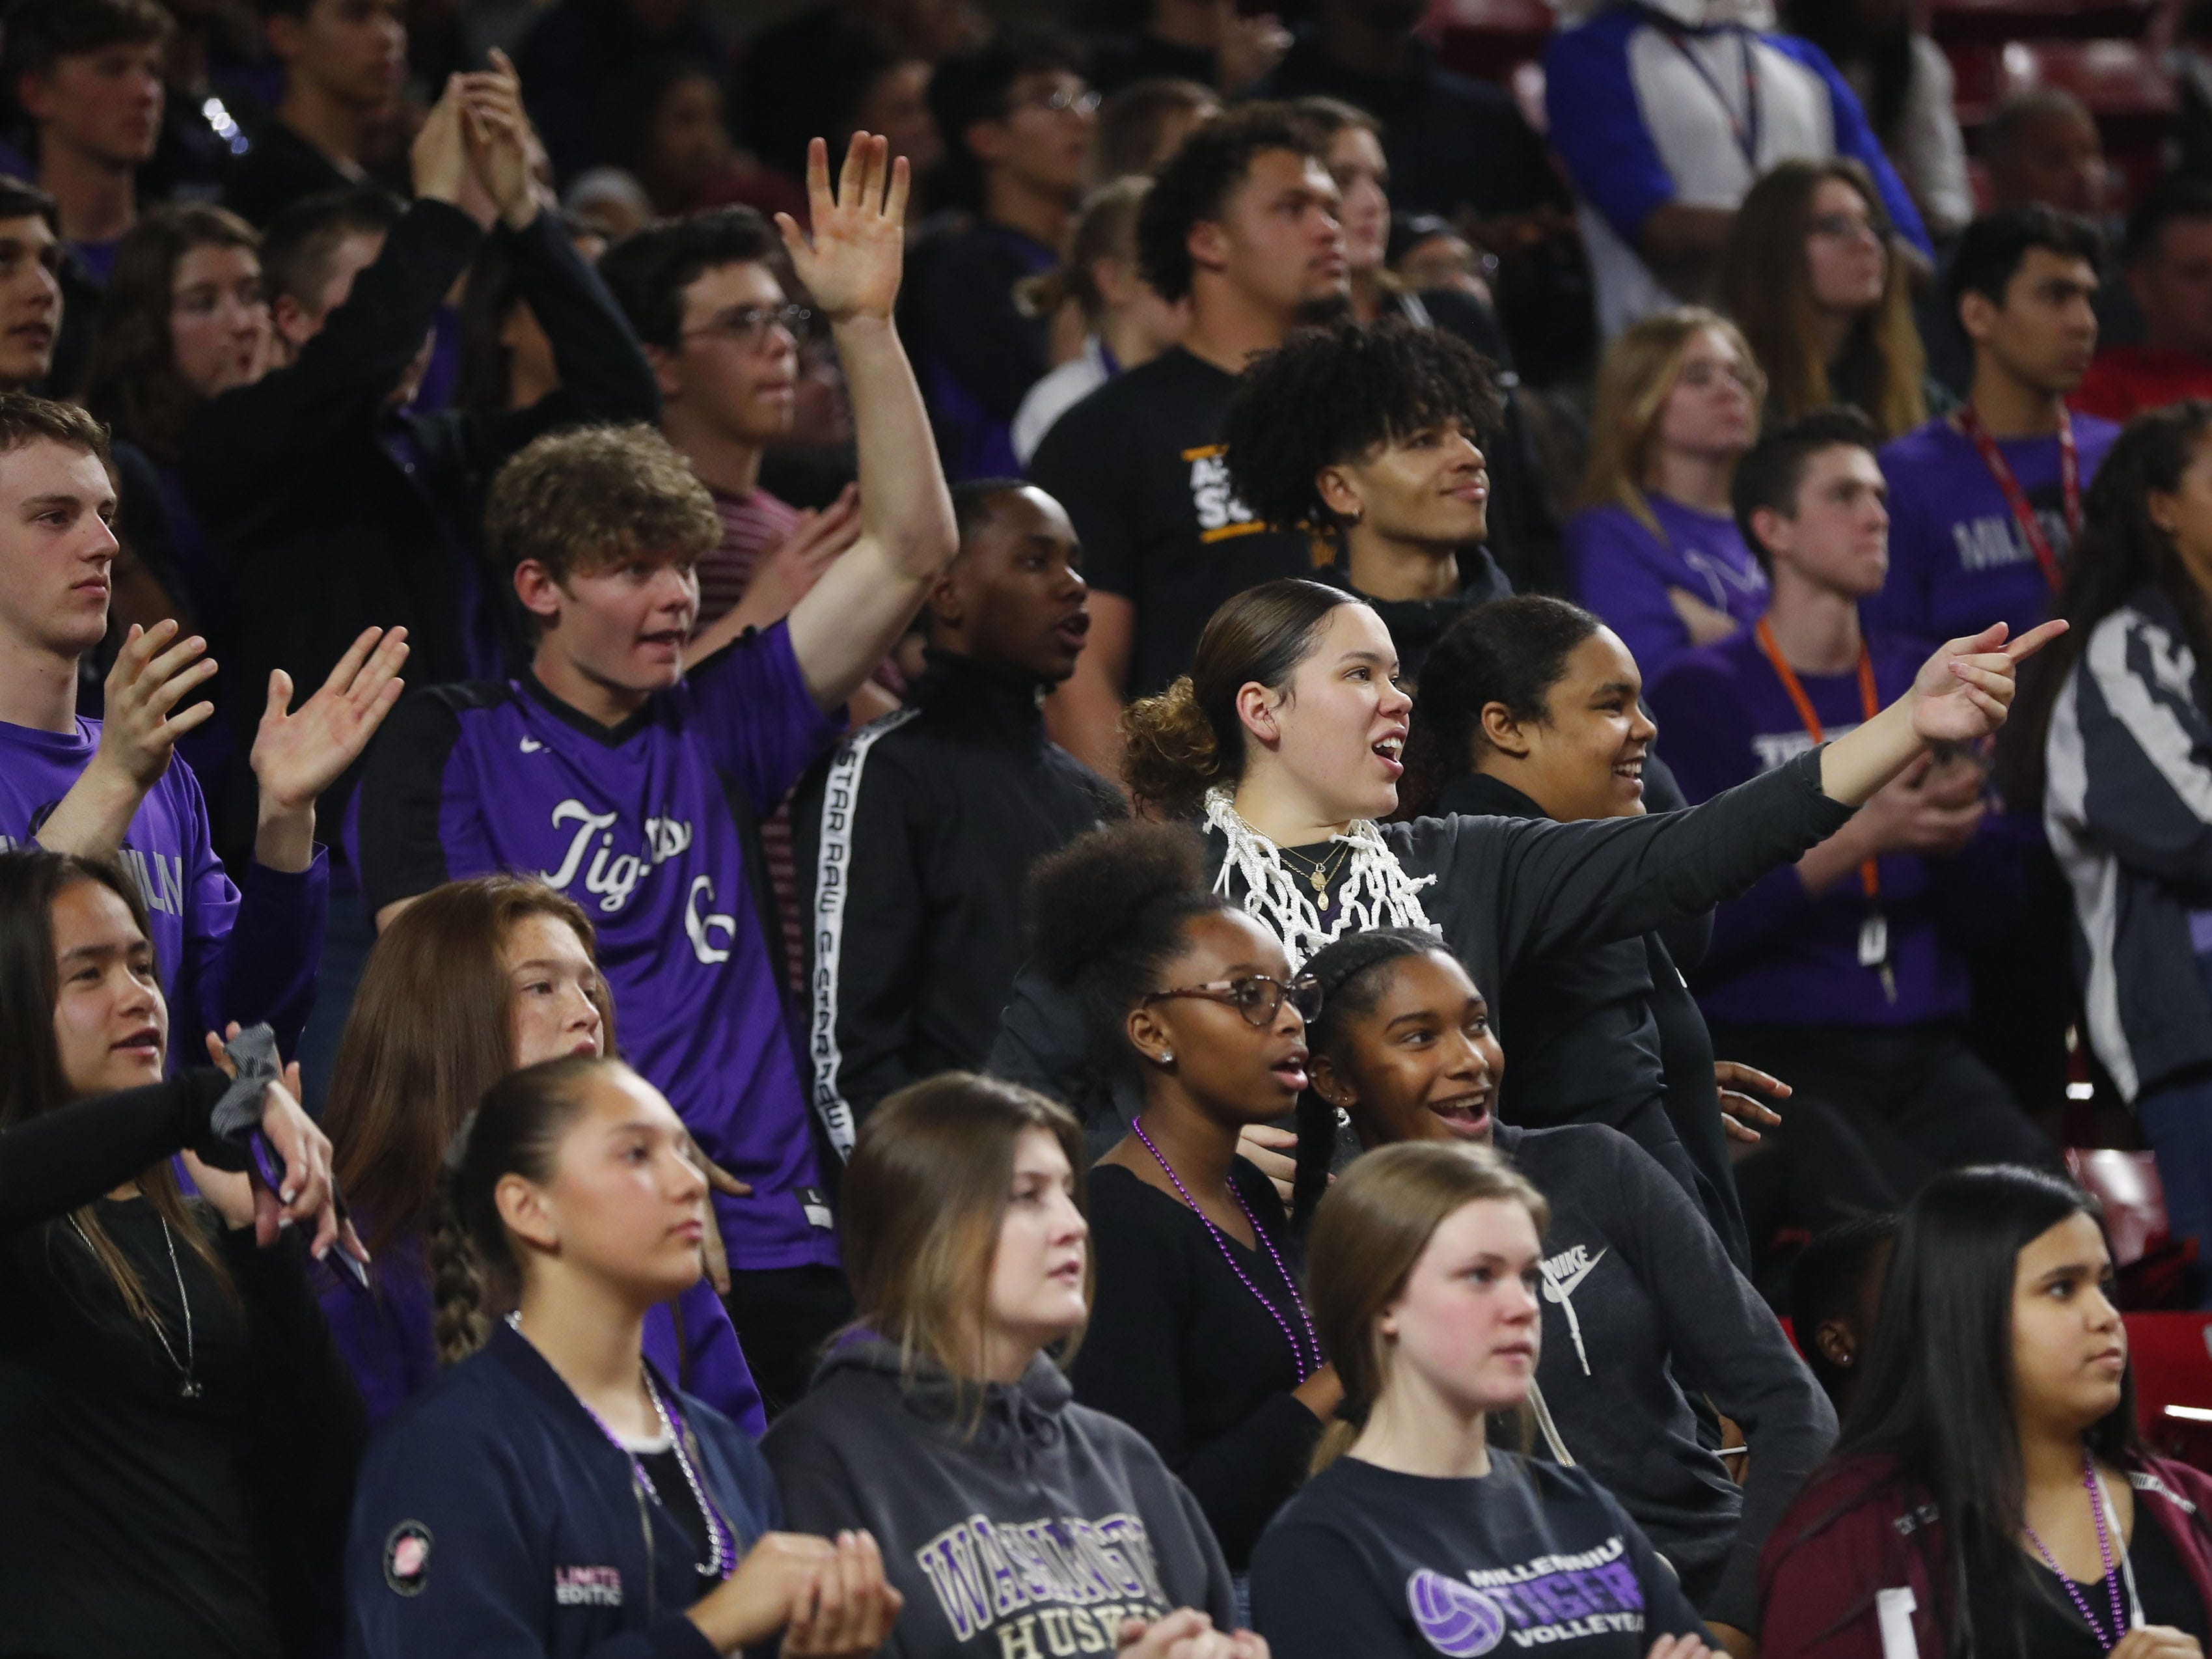 Millennium students cheer for their team against Gilbert during the Boys State 5A Championship game in Tempe, Ariz. Feb. 25, 2019.